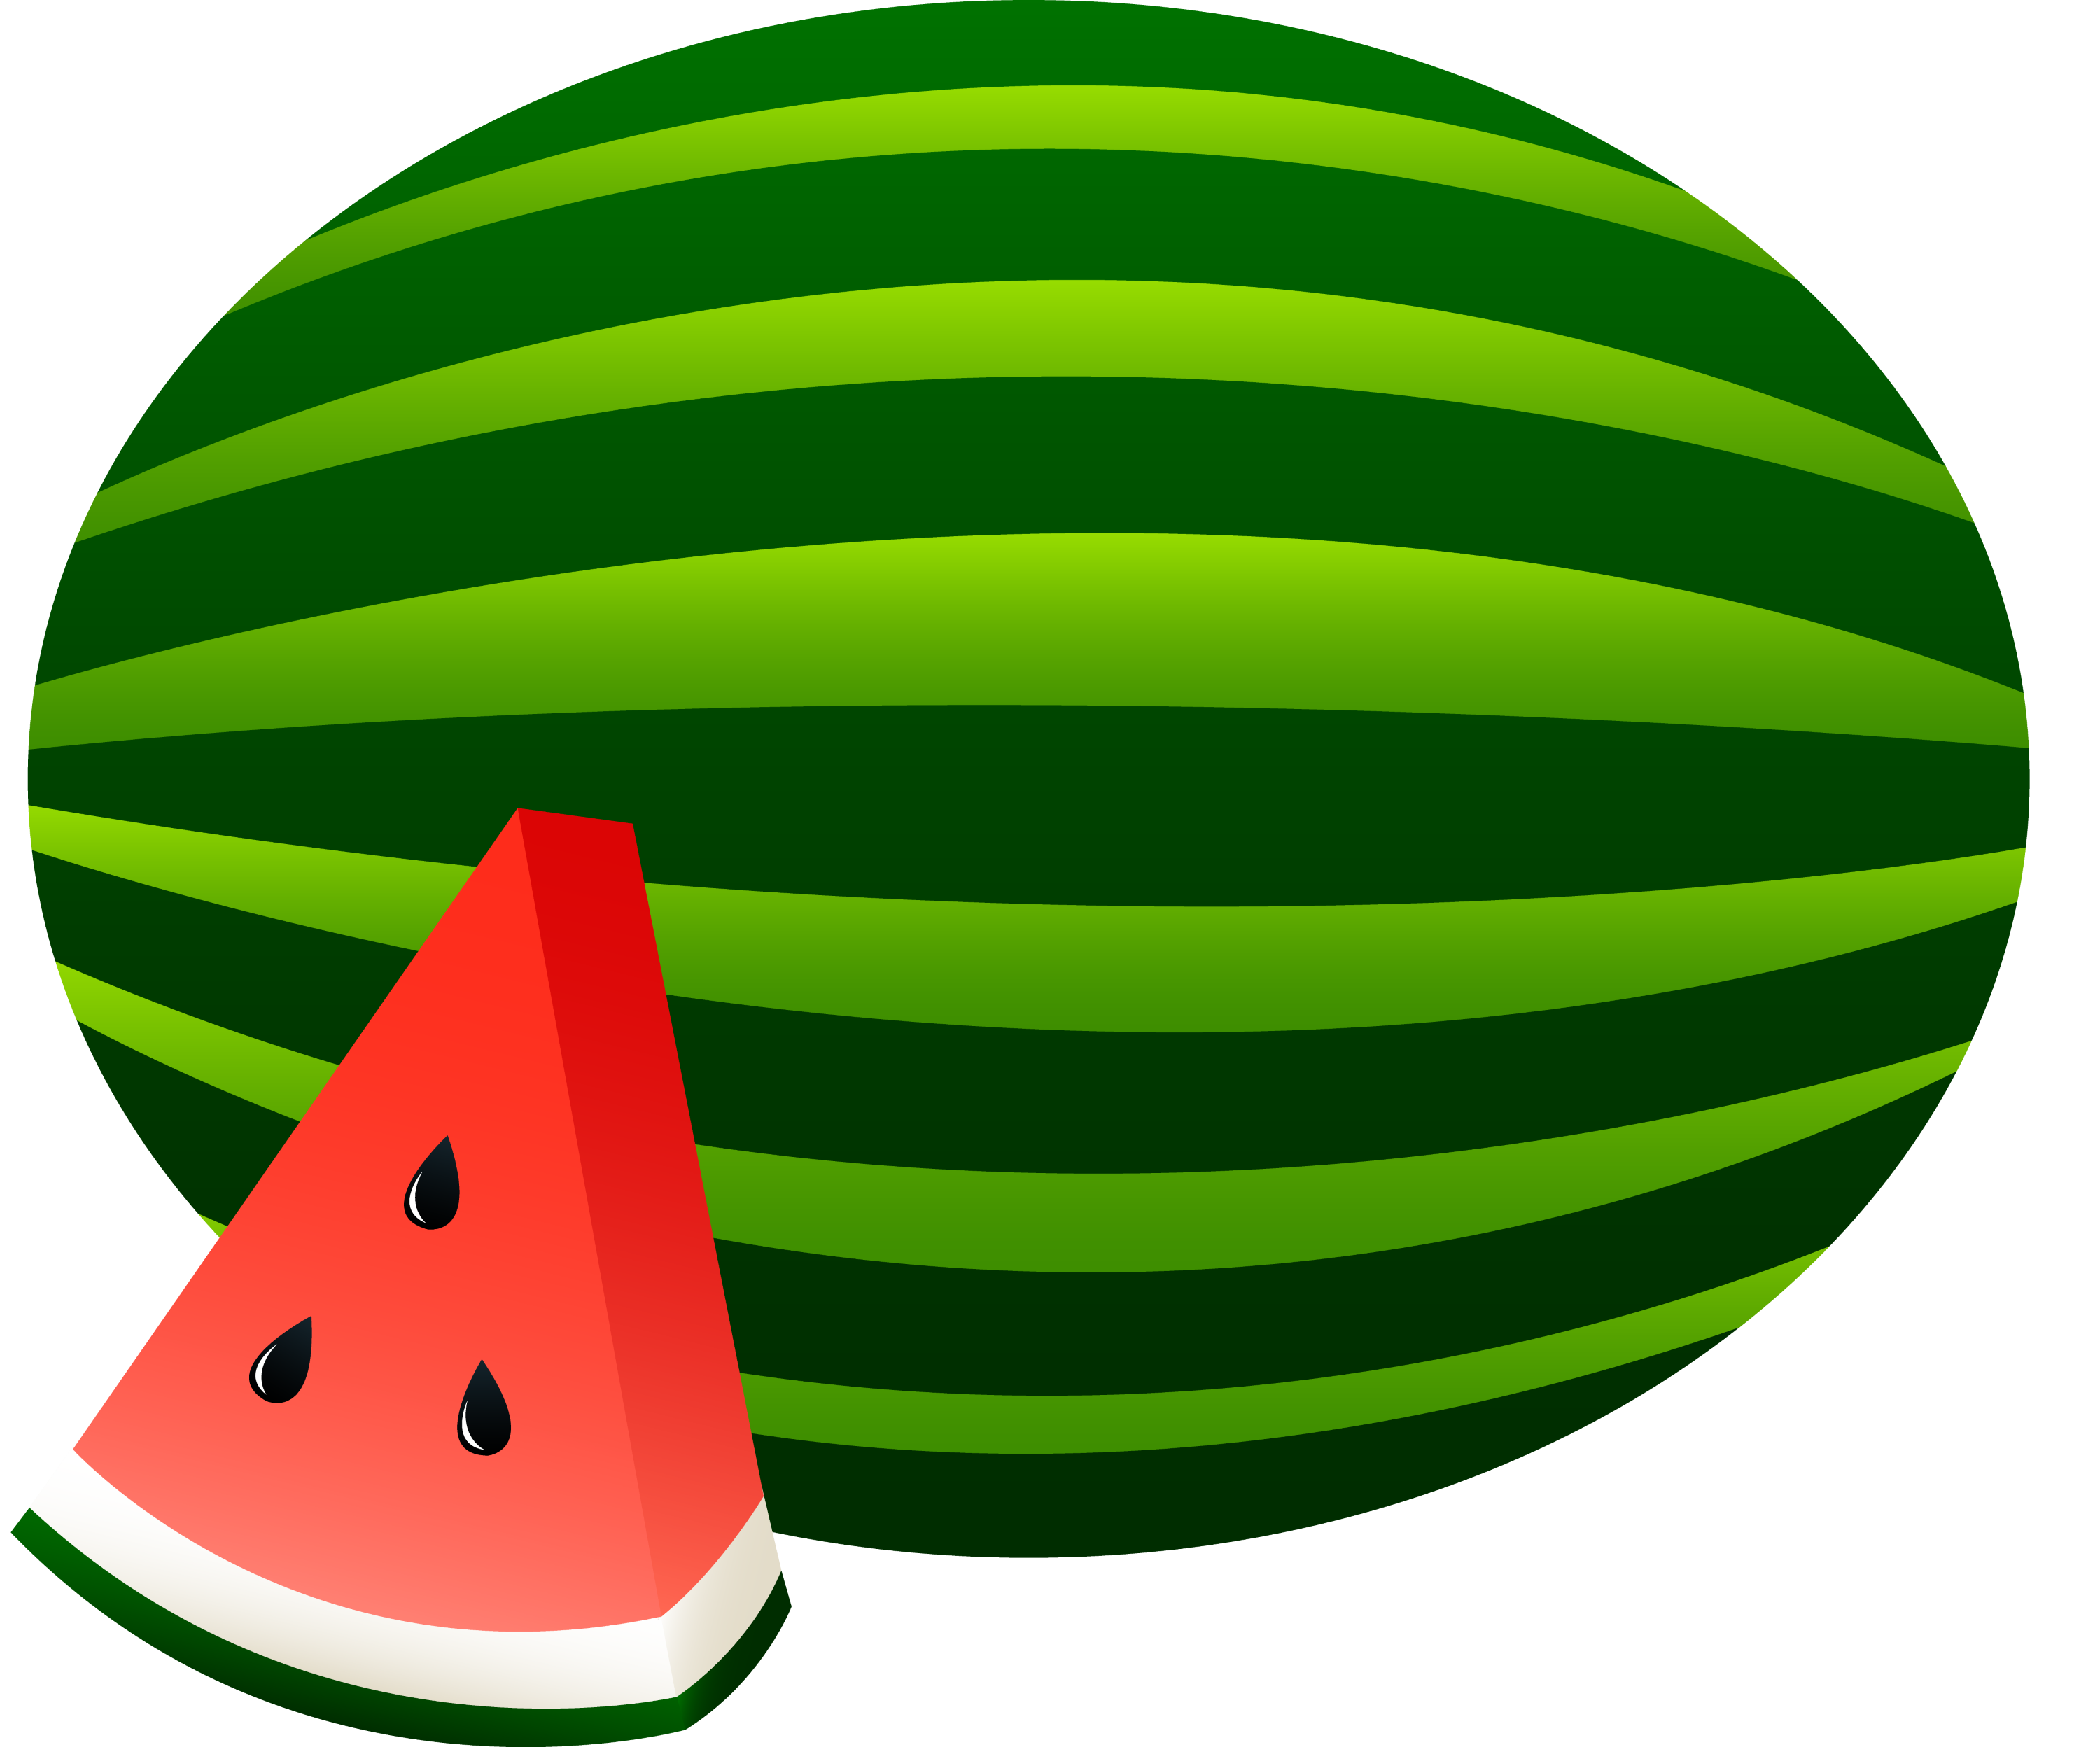 Watermelon Cartoon Images Watermelon Whol...